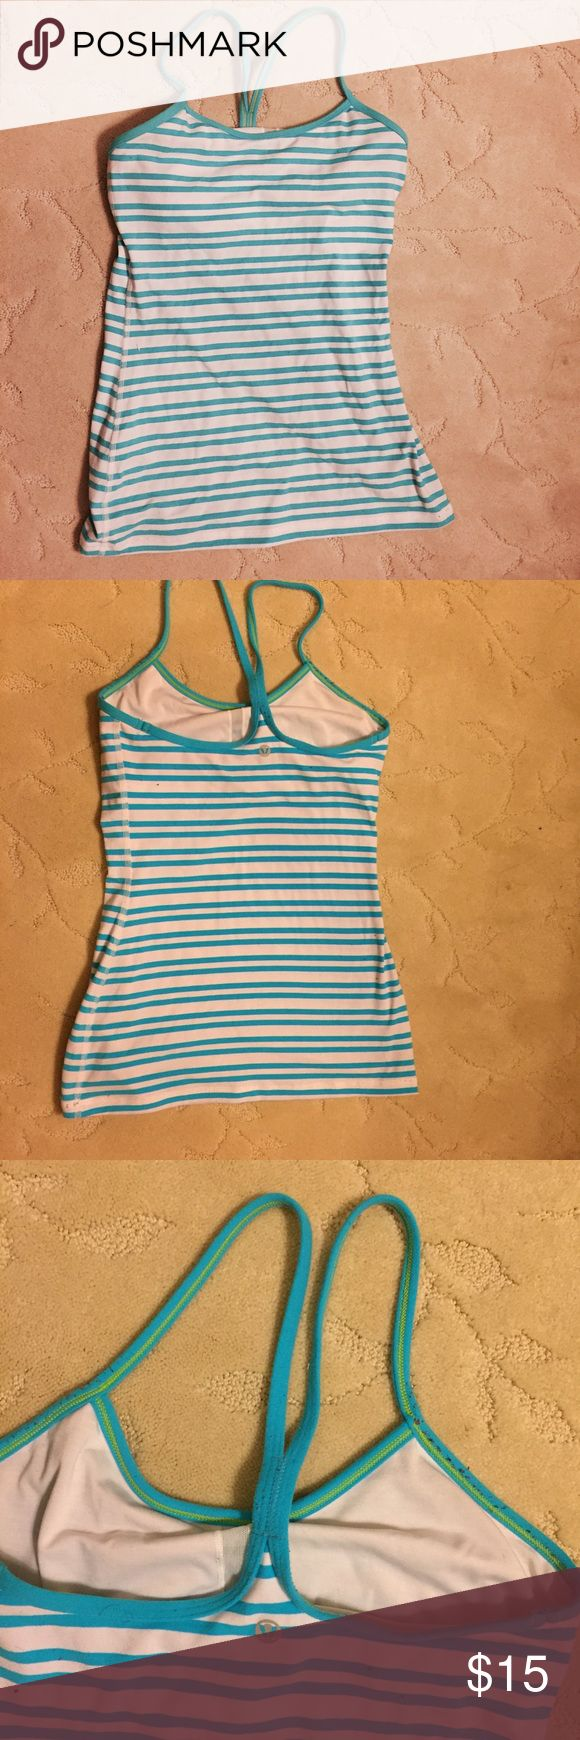 Lululemon striped tank top with built in bra Cute striped Lululemon tank top with a built in bra! I can send you cups with this if you are a 32D but otherwise if you use your own cups you can make it fit your bust better. lululemon athletica Tops Tank Tops